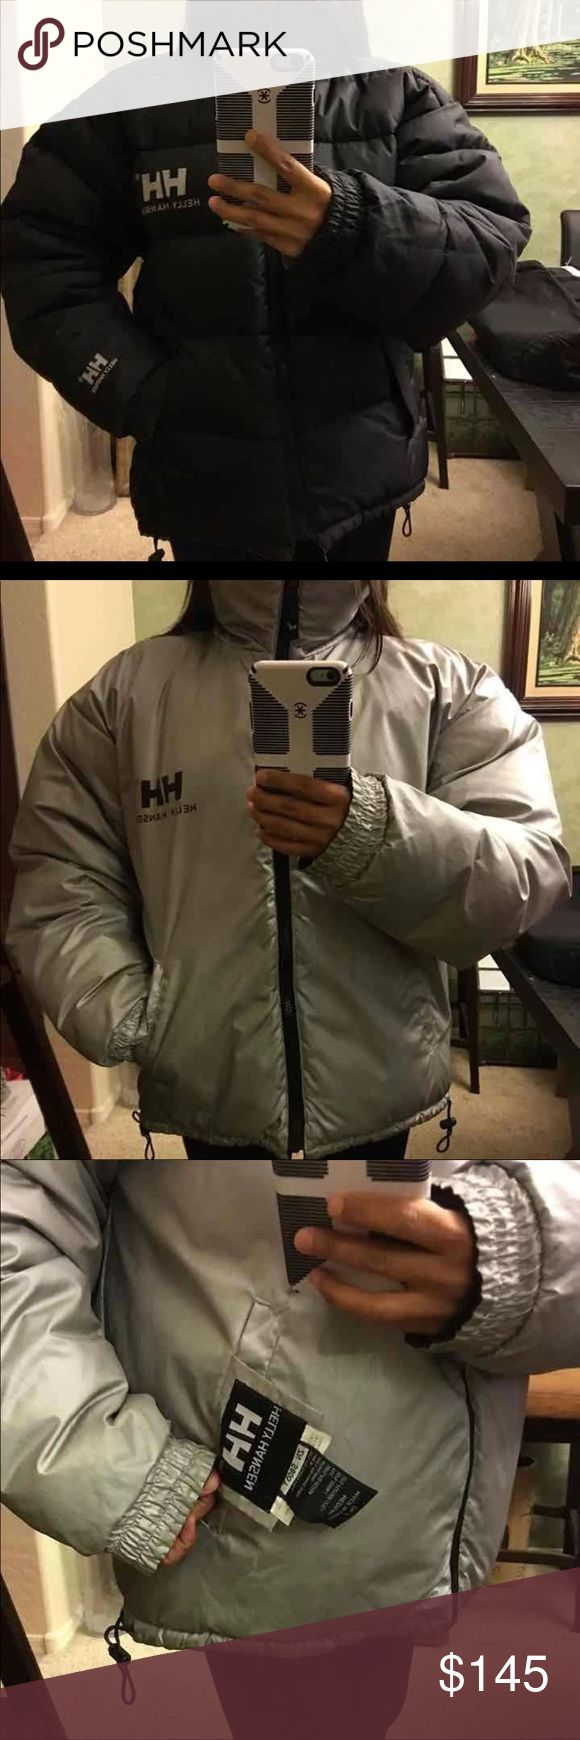 HELLY Hansen puff reversible/insulated jacket HELLY HANSEN feather down reversible puff jacket sz M but fits L too. Elastic bands doesn't stretch anymore but jacket still in great condition NO stains or rips. **Great for really cold weather and snow** Helly Hansen Jackets & Coats Puffers